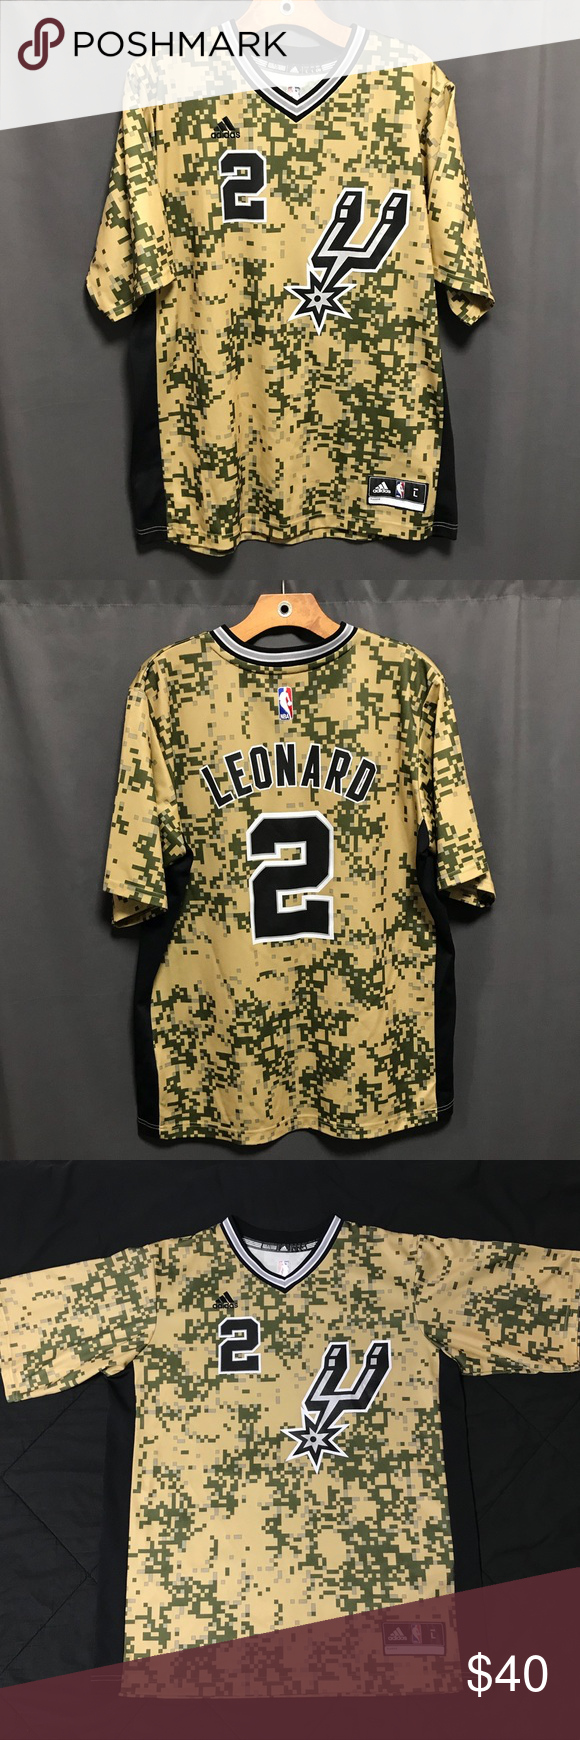 c3491799 NBA Jersey San Antonio Spurs Kawhi L. adidas Camo -Men's San Antonio Spurs  Kawhi Leonard adidas Camo Pride - I only wore this shirt about 3 or 4  times, ...